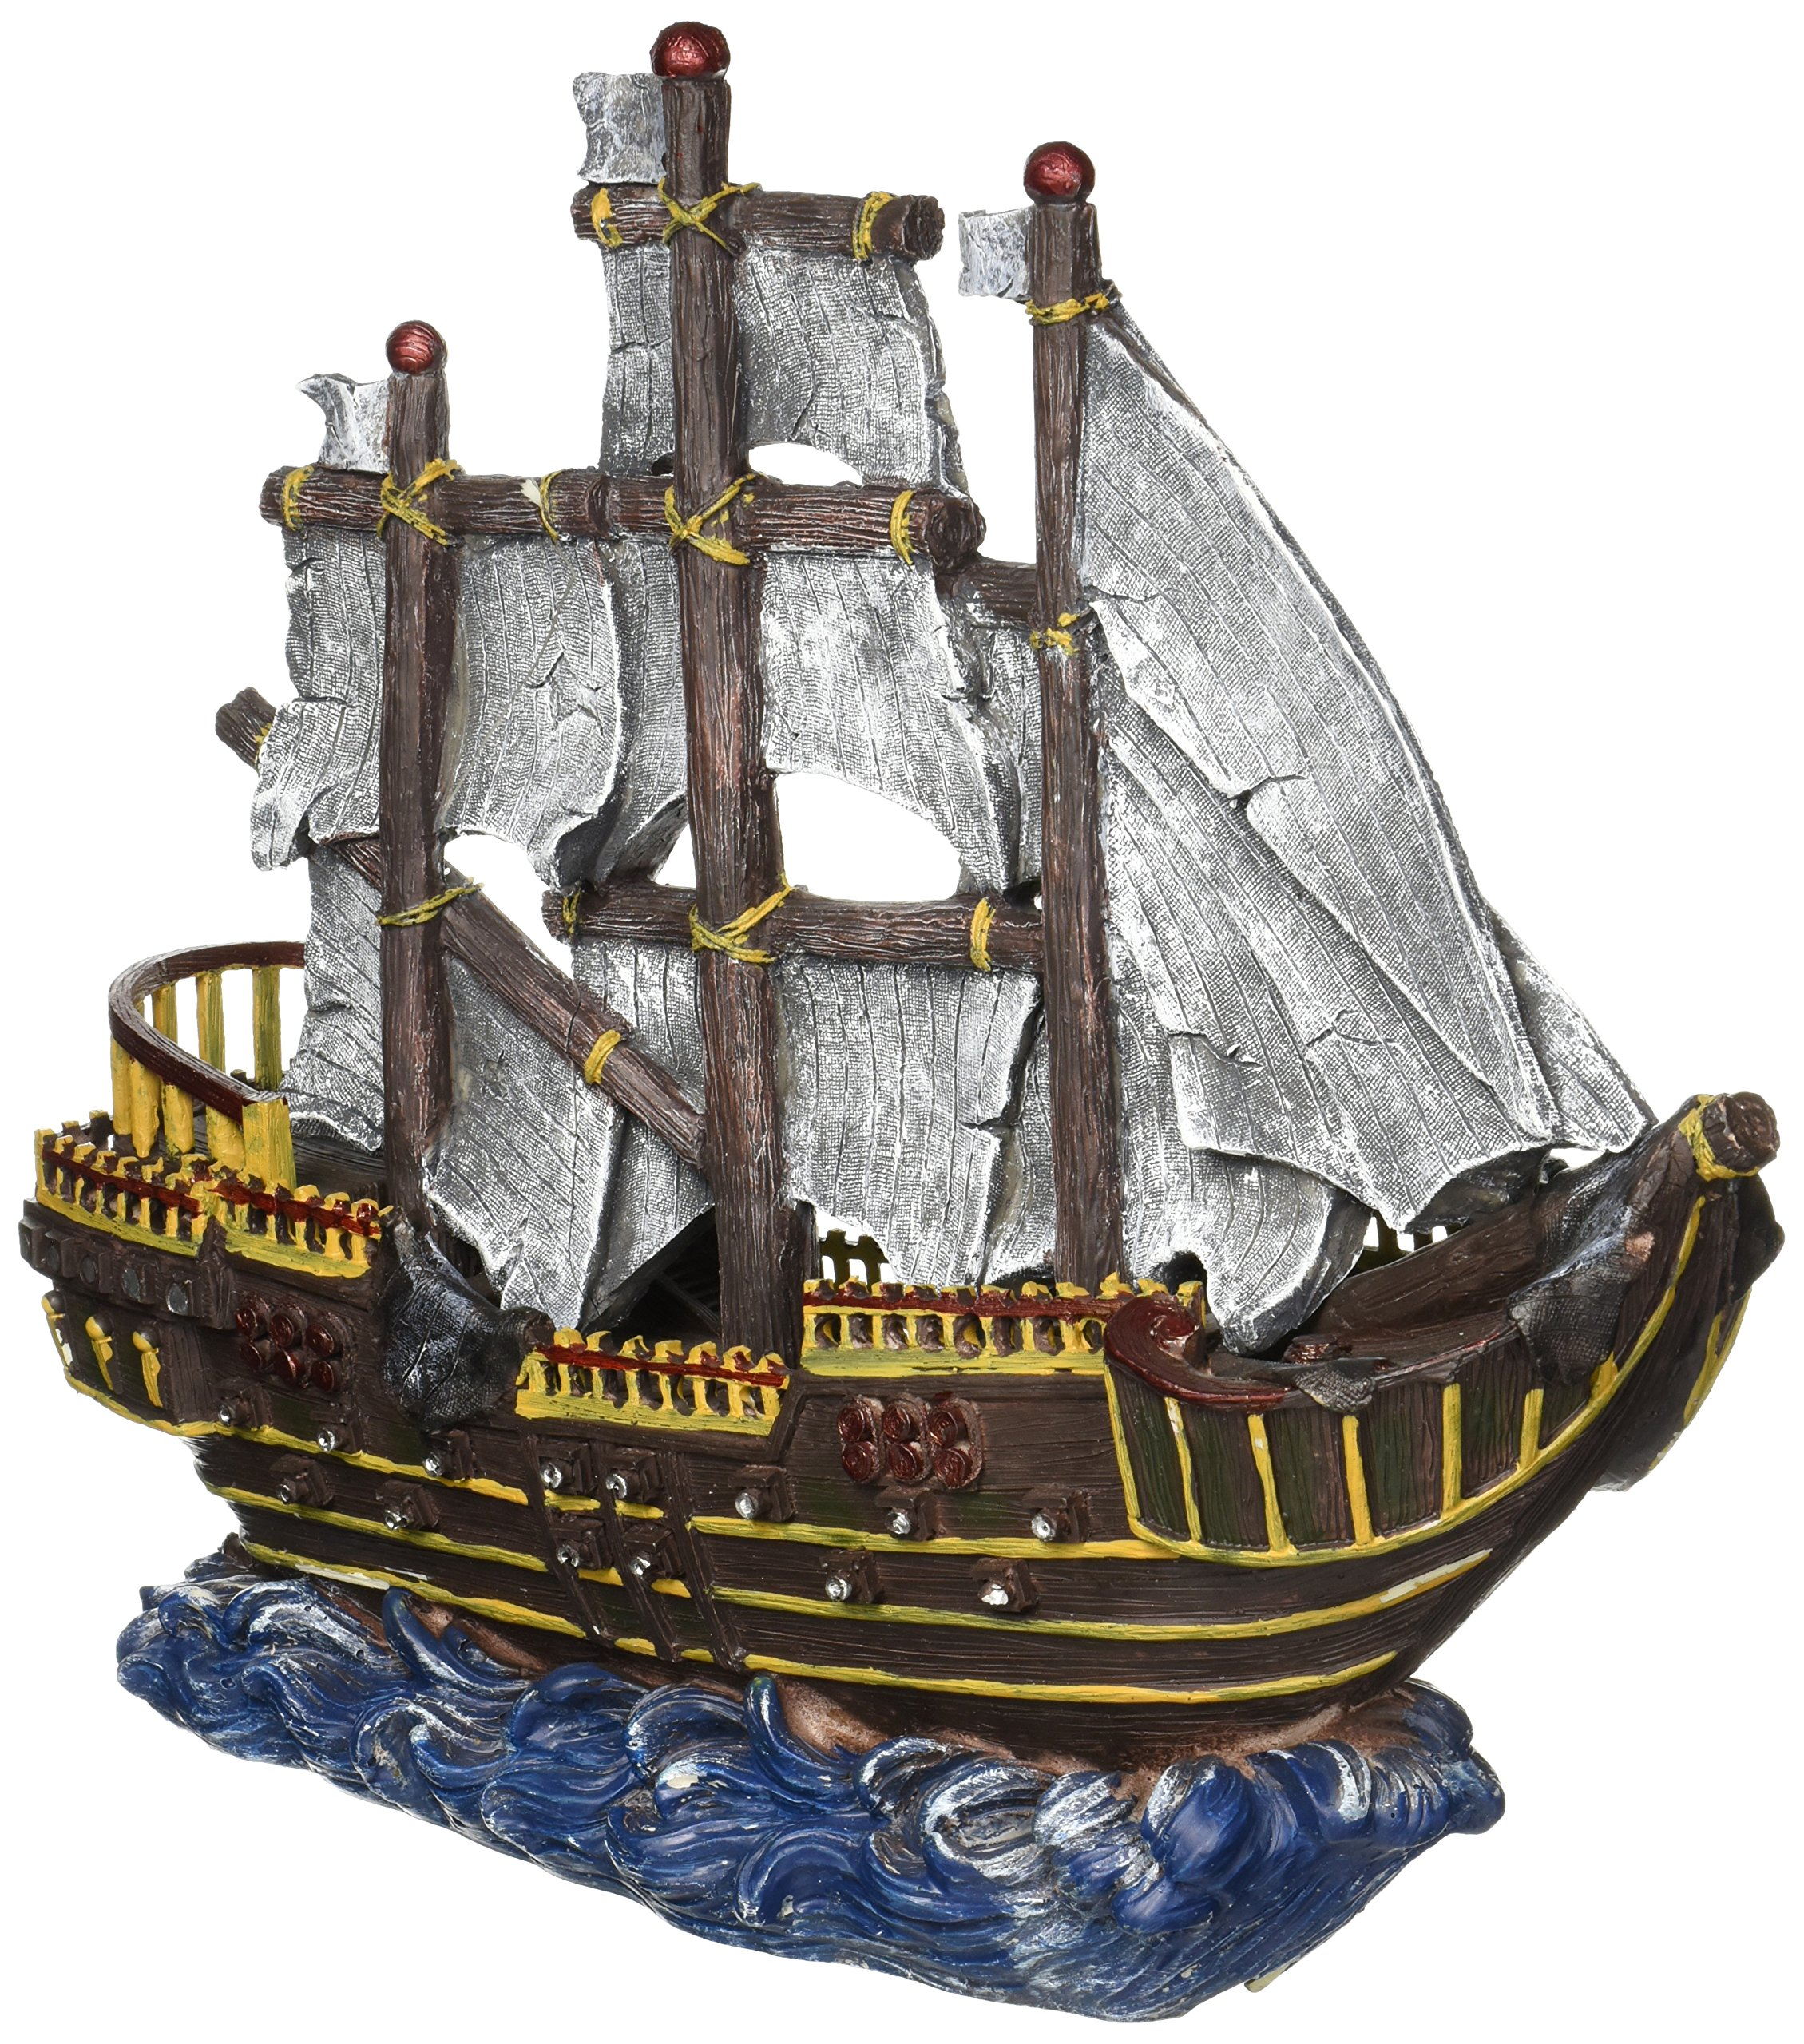 Penn Plax Large Pirate Wave Runner Ship Fish Tank Ornament by Penn Plax